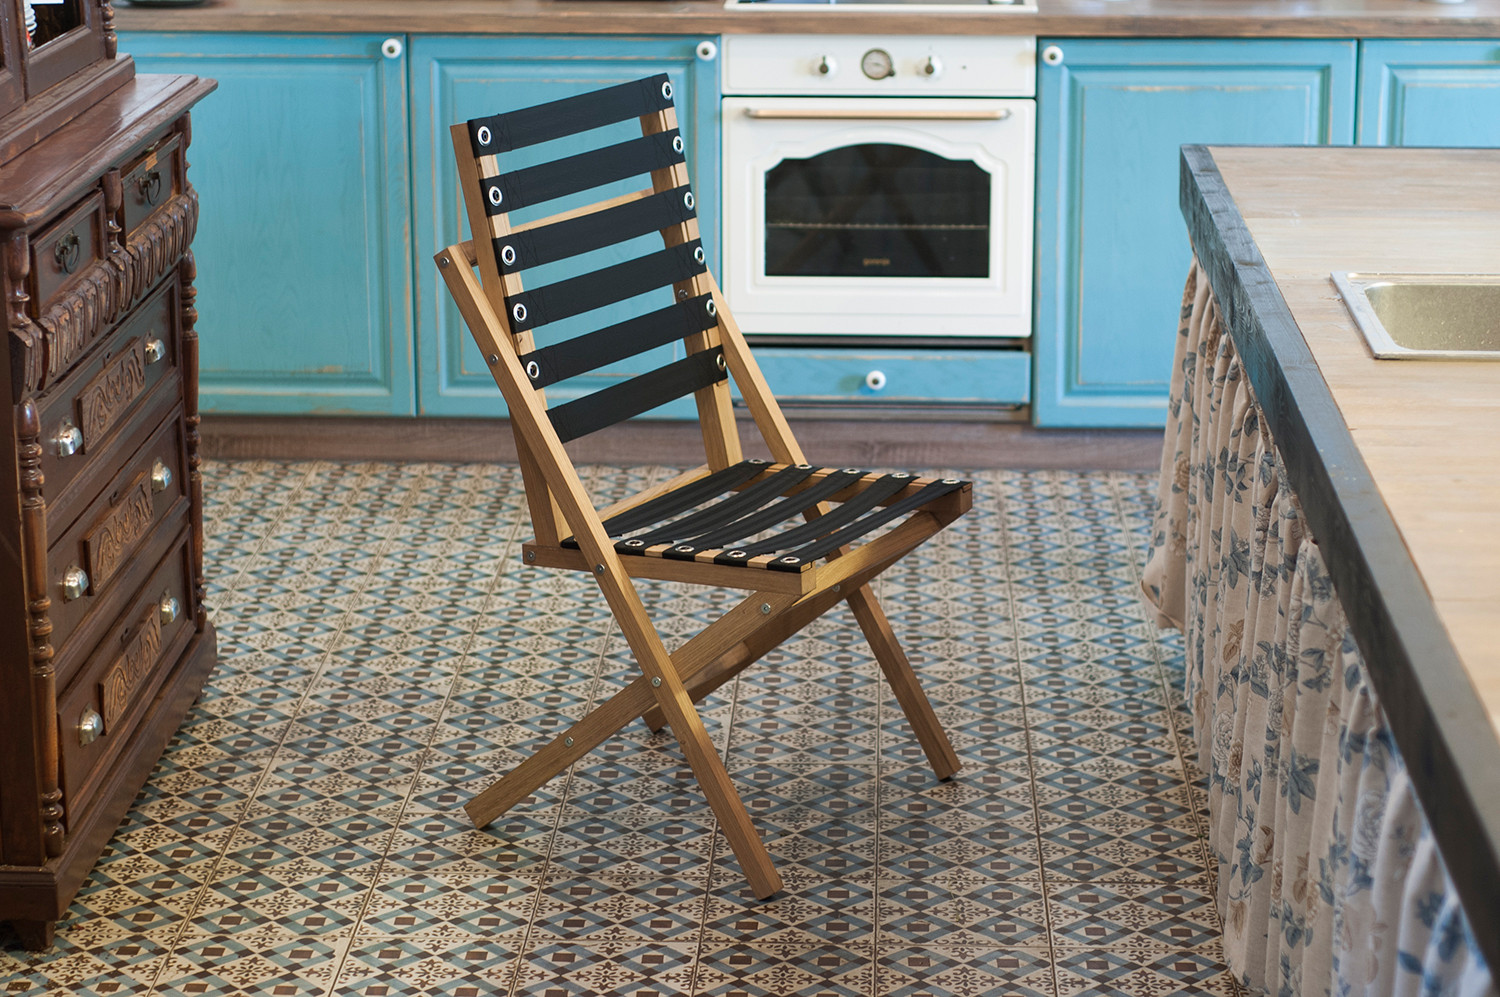 BOW chair in the kitchen interior